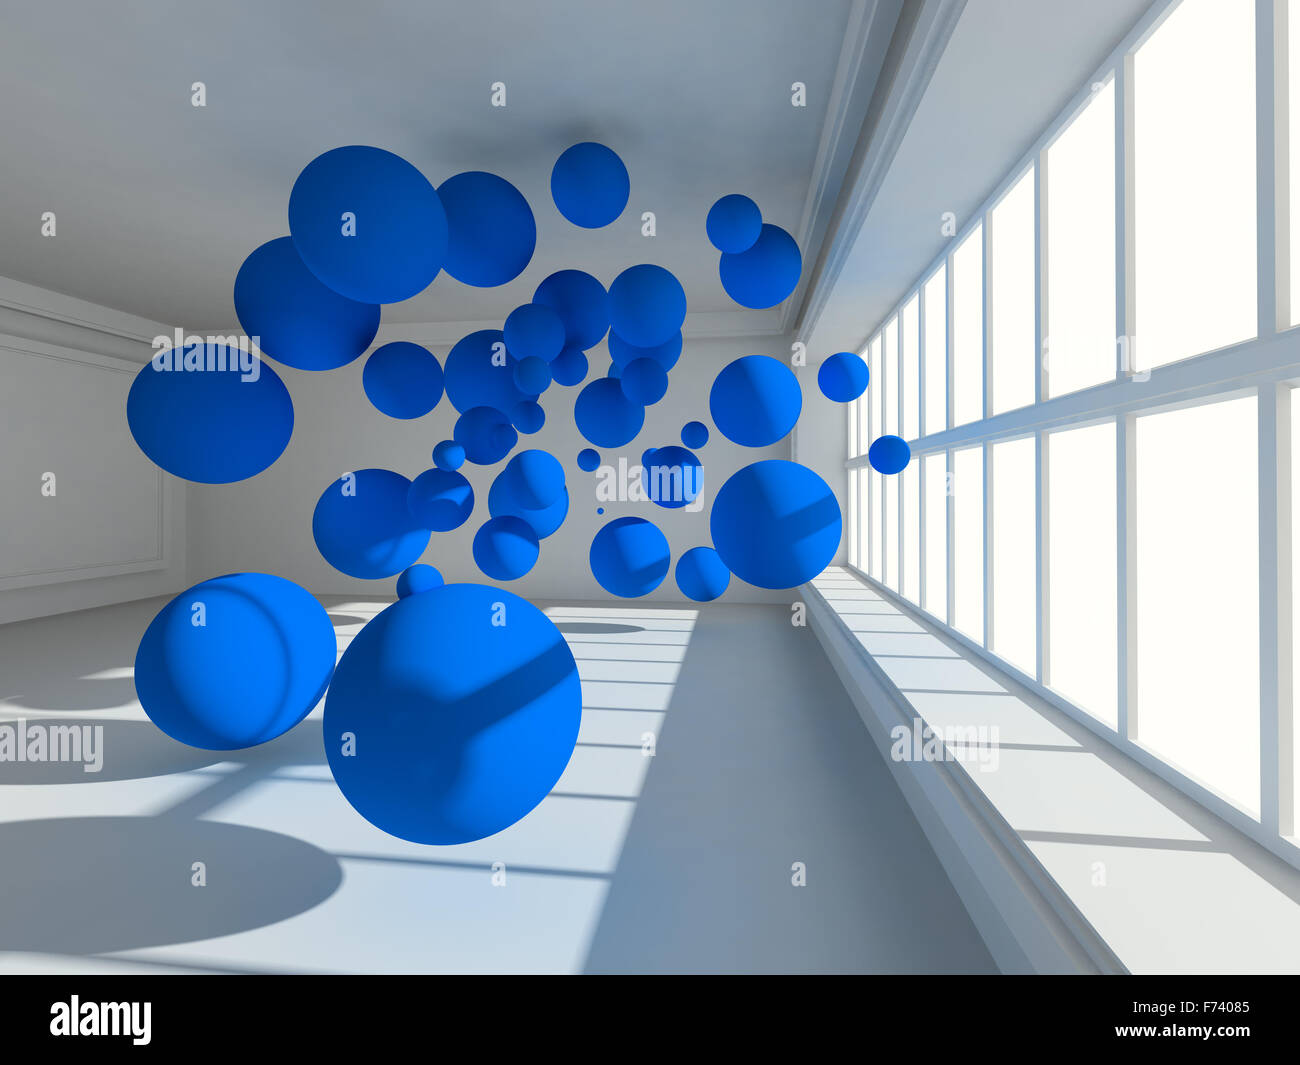 Surreal Empty interior 3d image with floating spheres - Stock Image